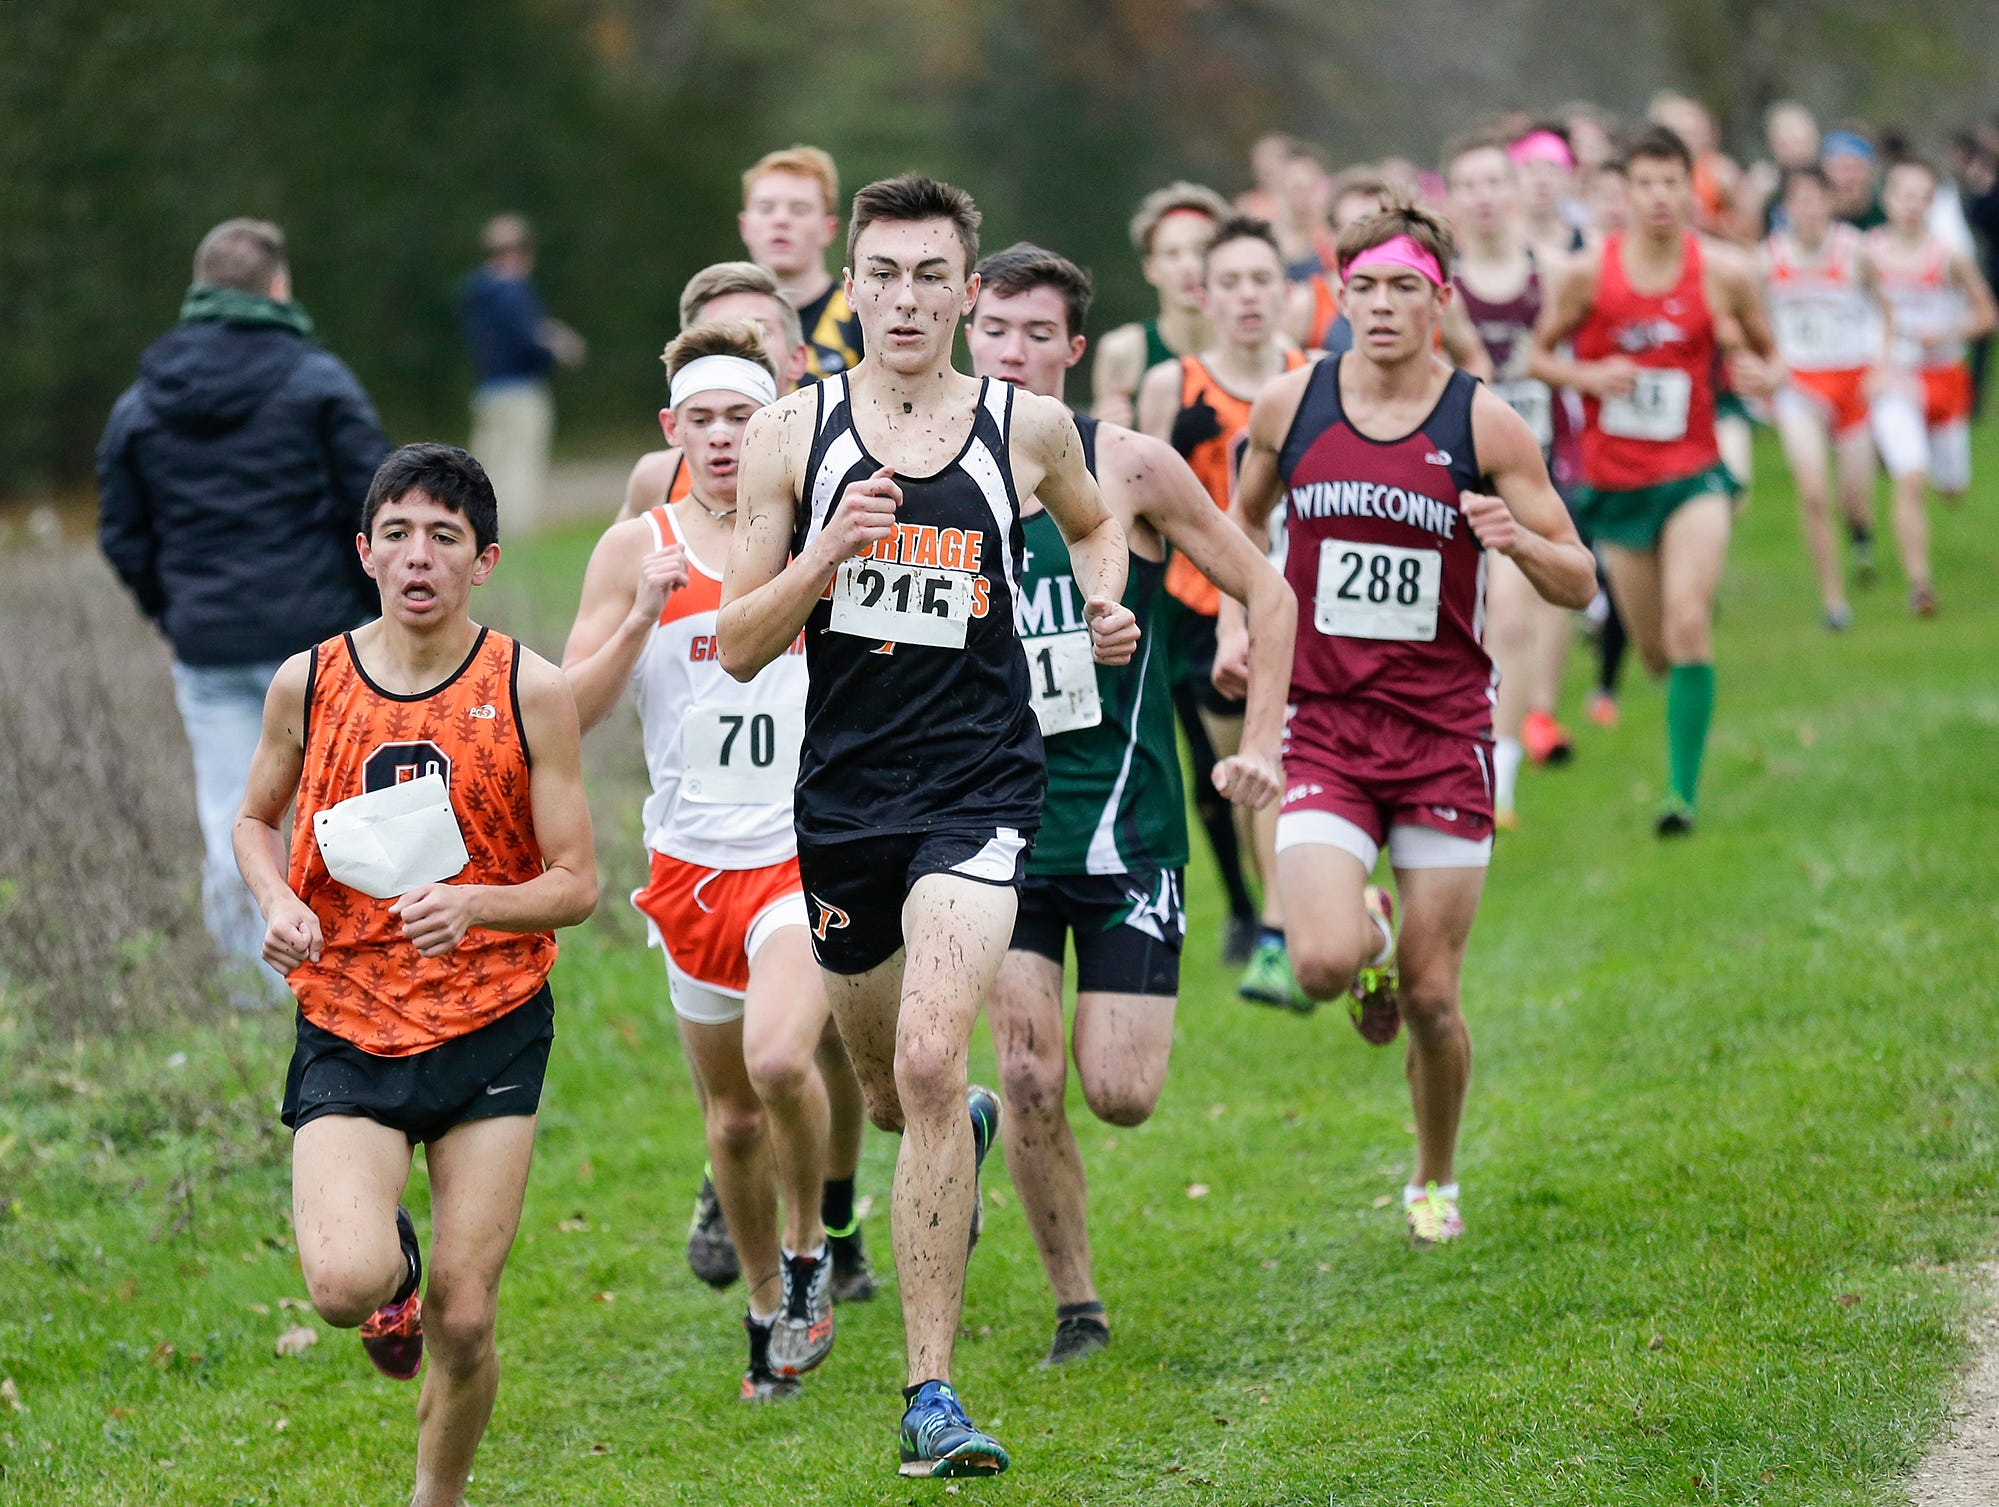 North Fond du Lac High School's Diego Charbonneau leads a pack of runners in the WIAA Division two Mayville sectional cross country meet at the Mayville golf course Friday, October 19, 2018. Doug Raflik/USA TODAY NETWORK-Wisconsin